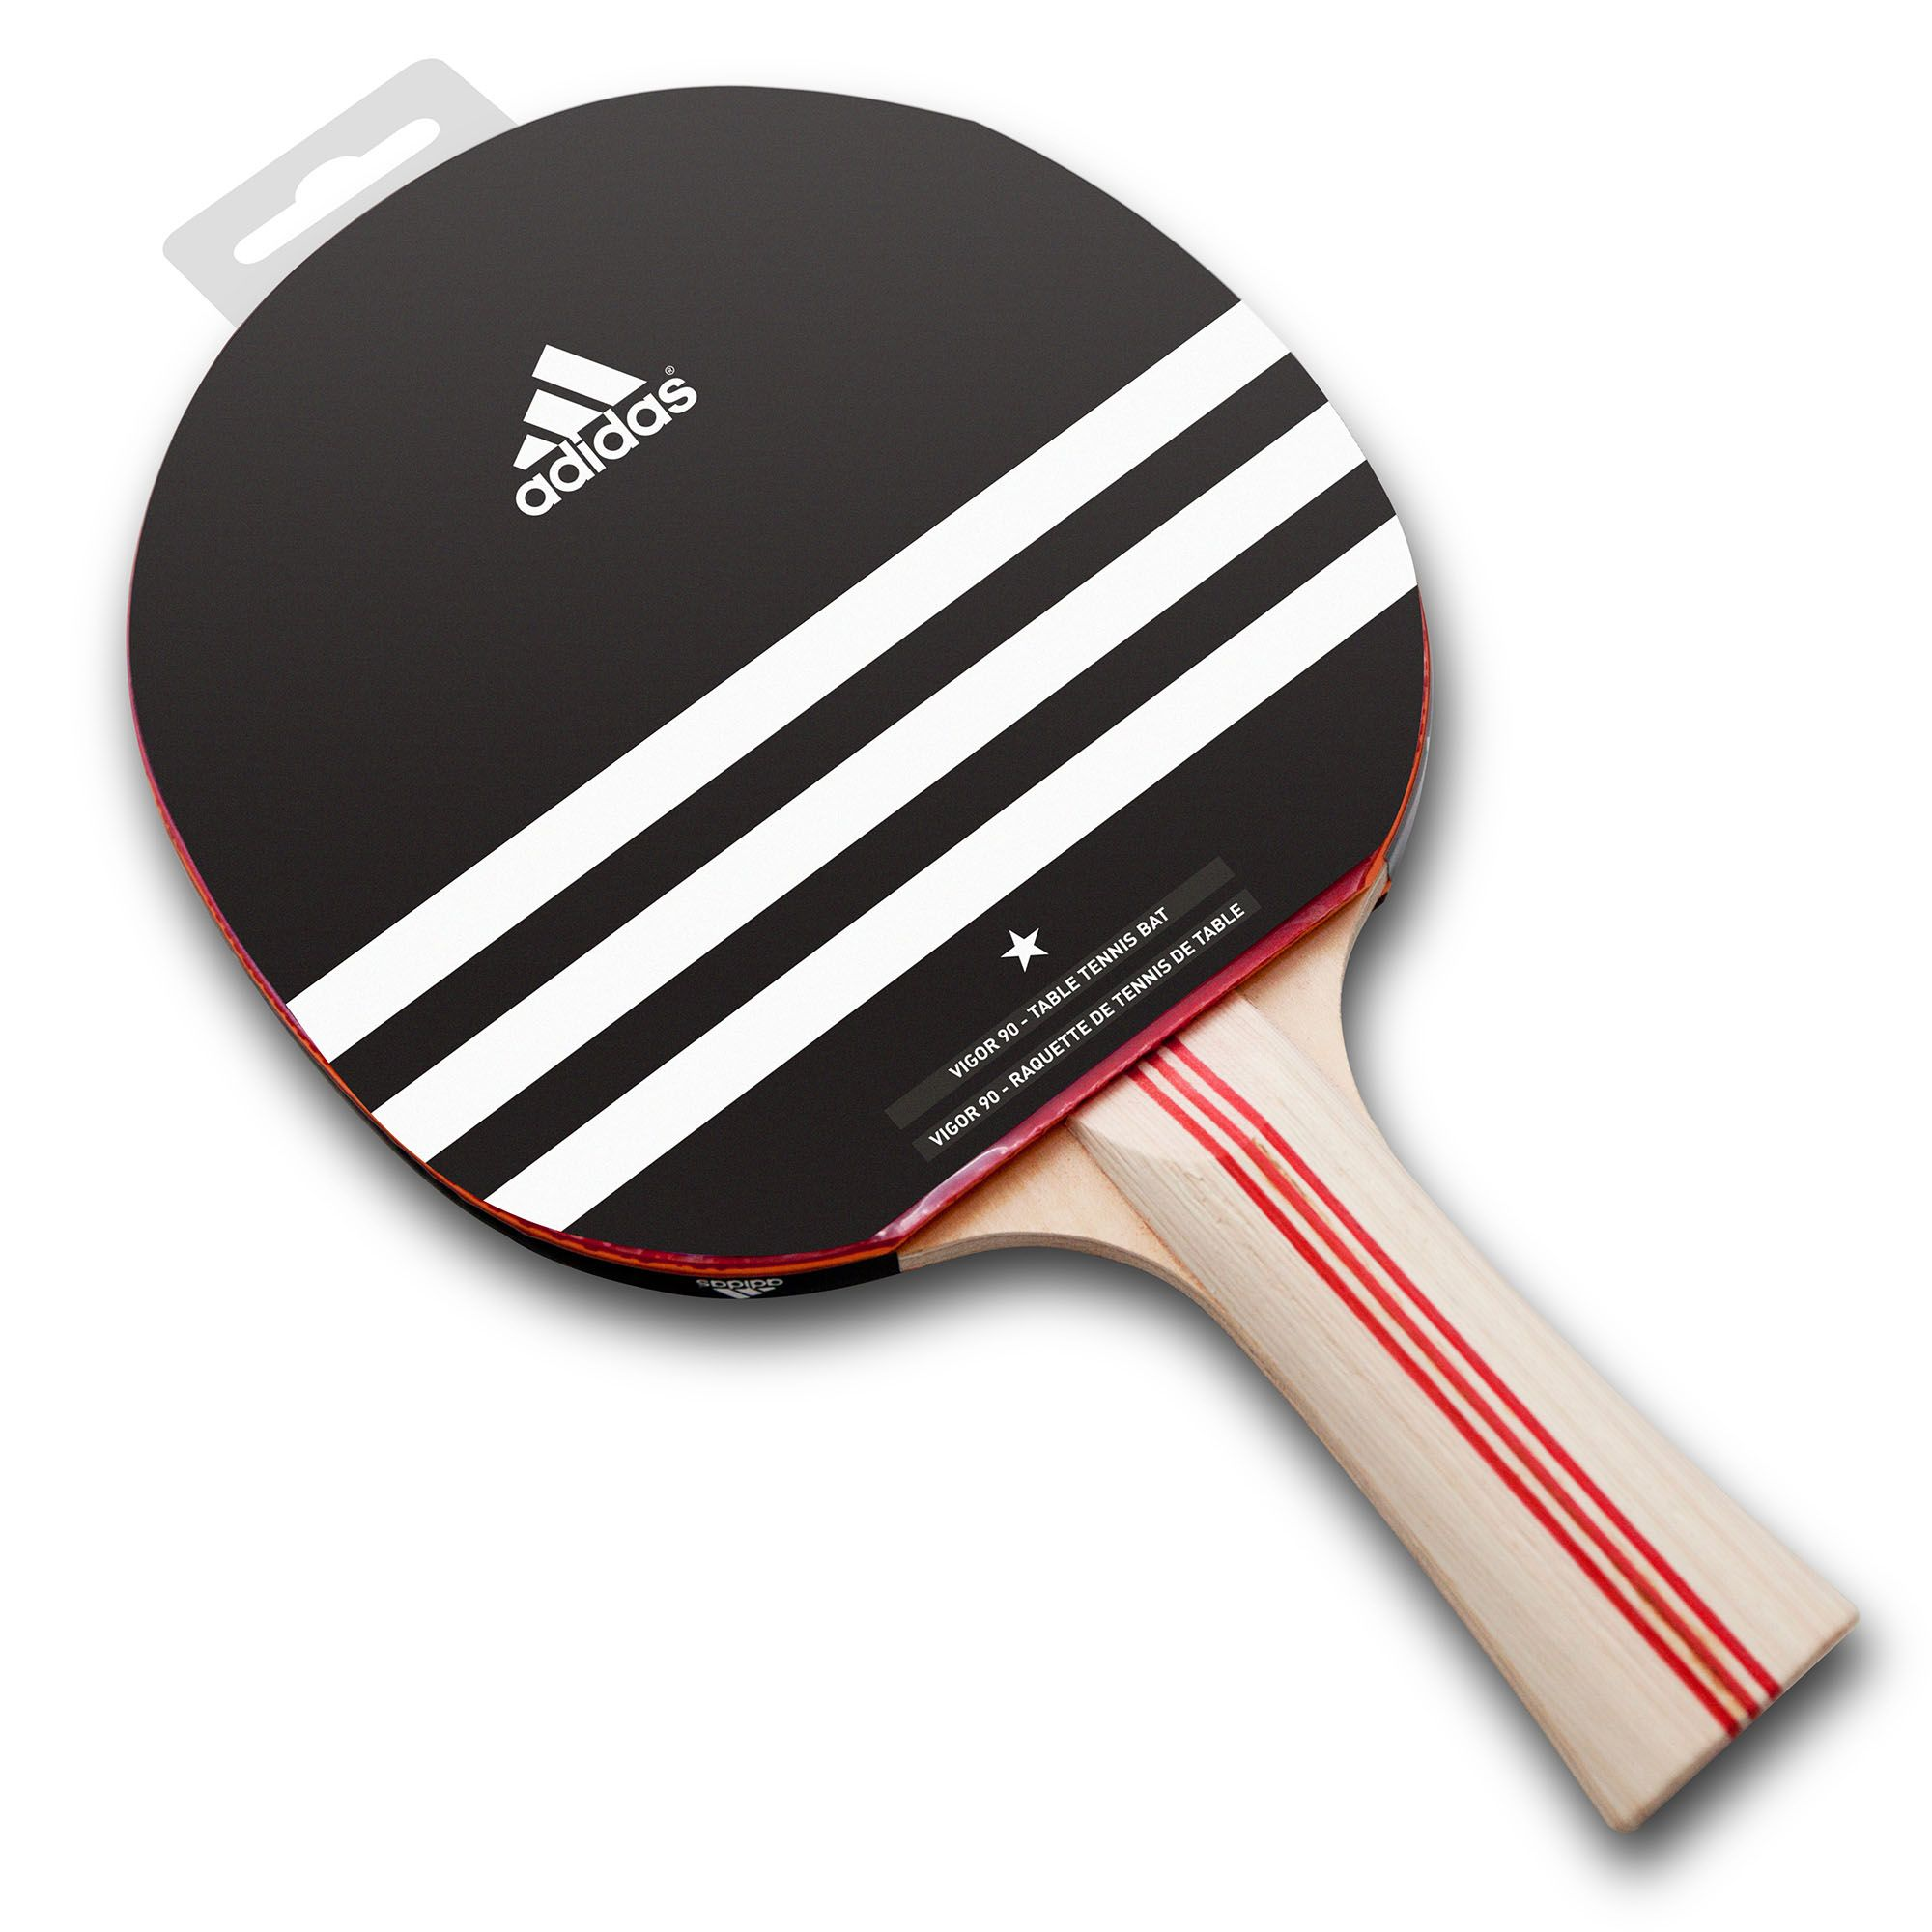 Adidas Vigor 90 Table Tennis Bat Sweatband Com